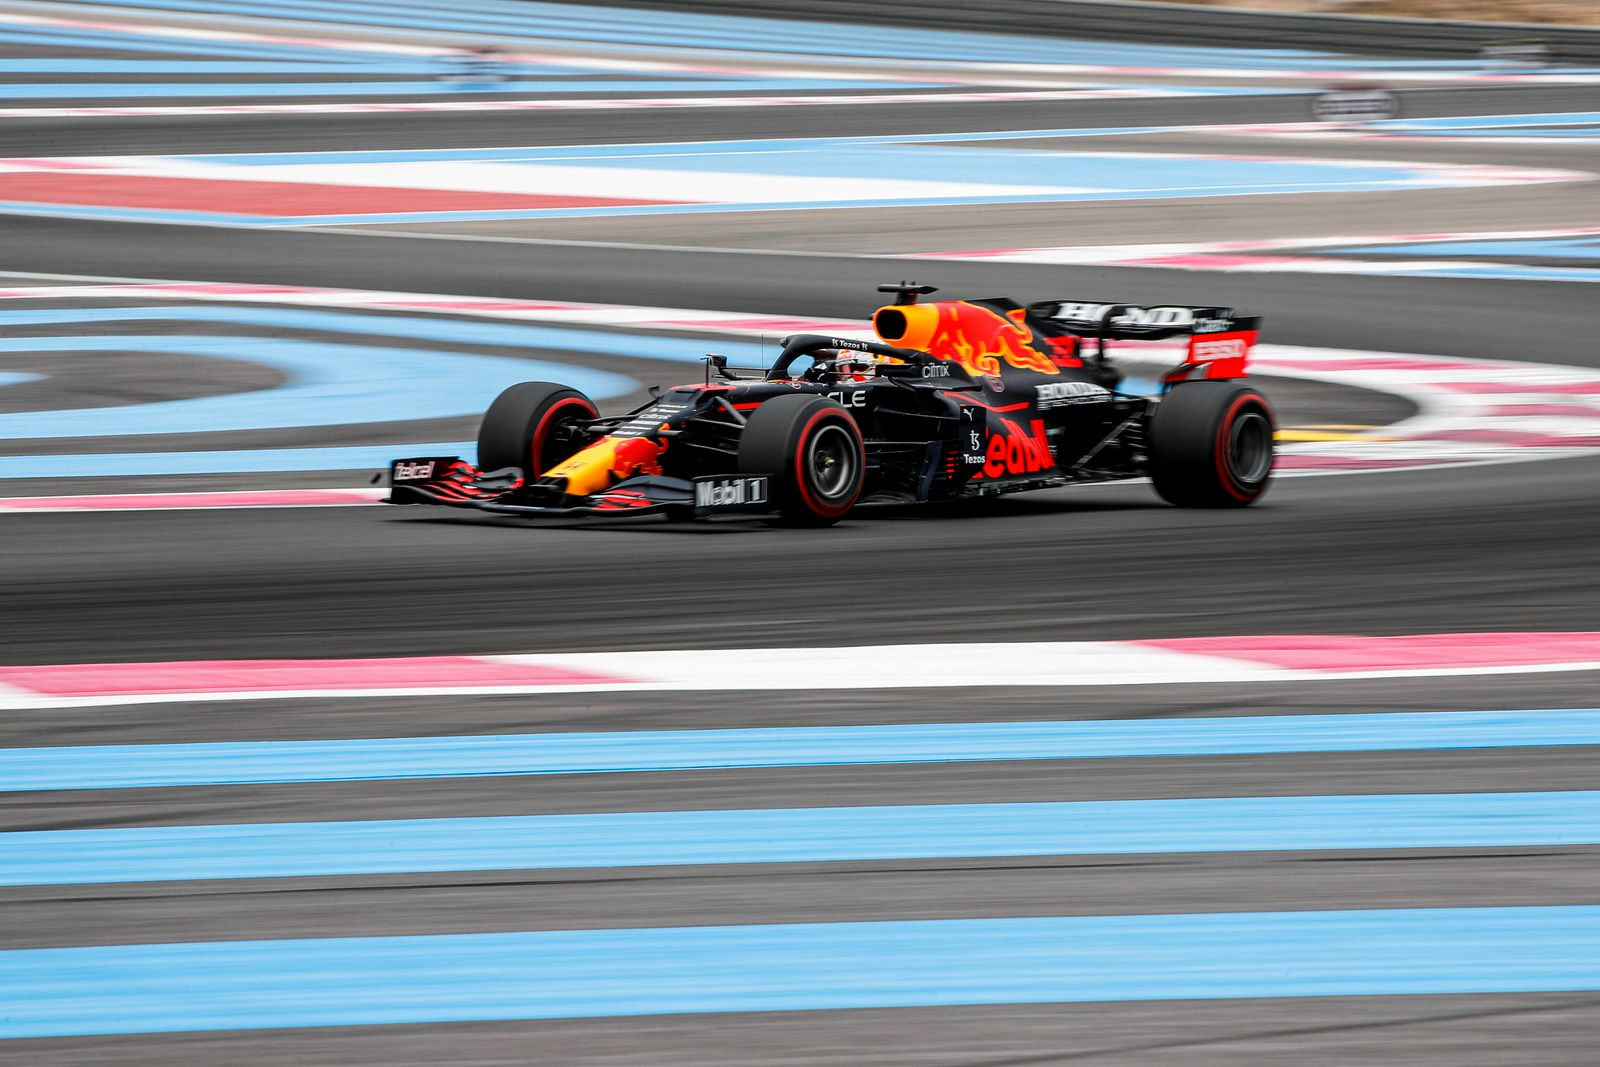 Formula 1 2021: French GP CIRCUIT PAUL RICARD, FRANCE - JUNE 19: Max Verstappen, Red Bull Racing RB16B during the French